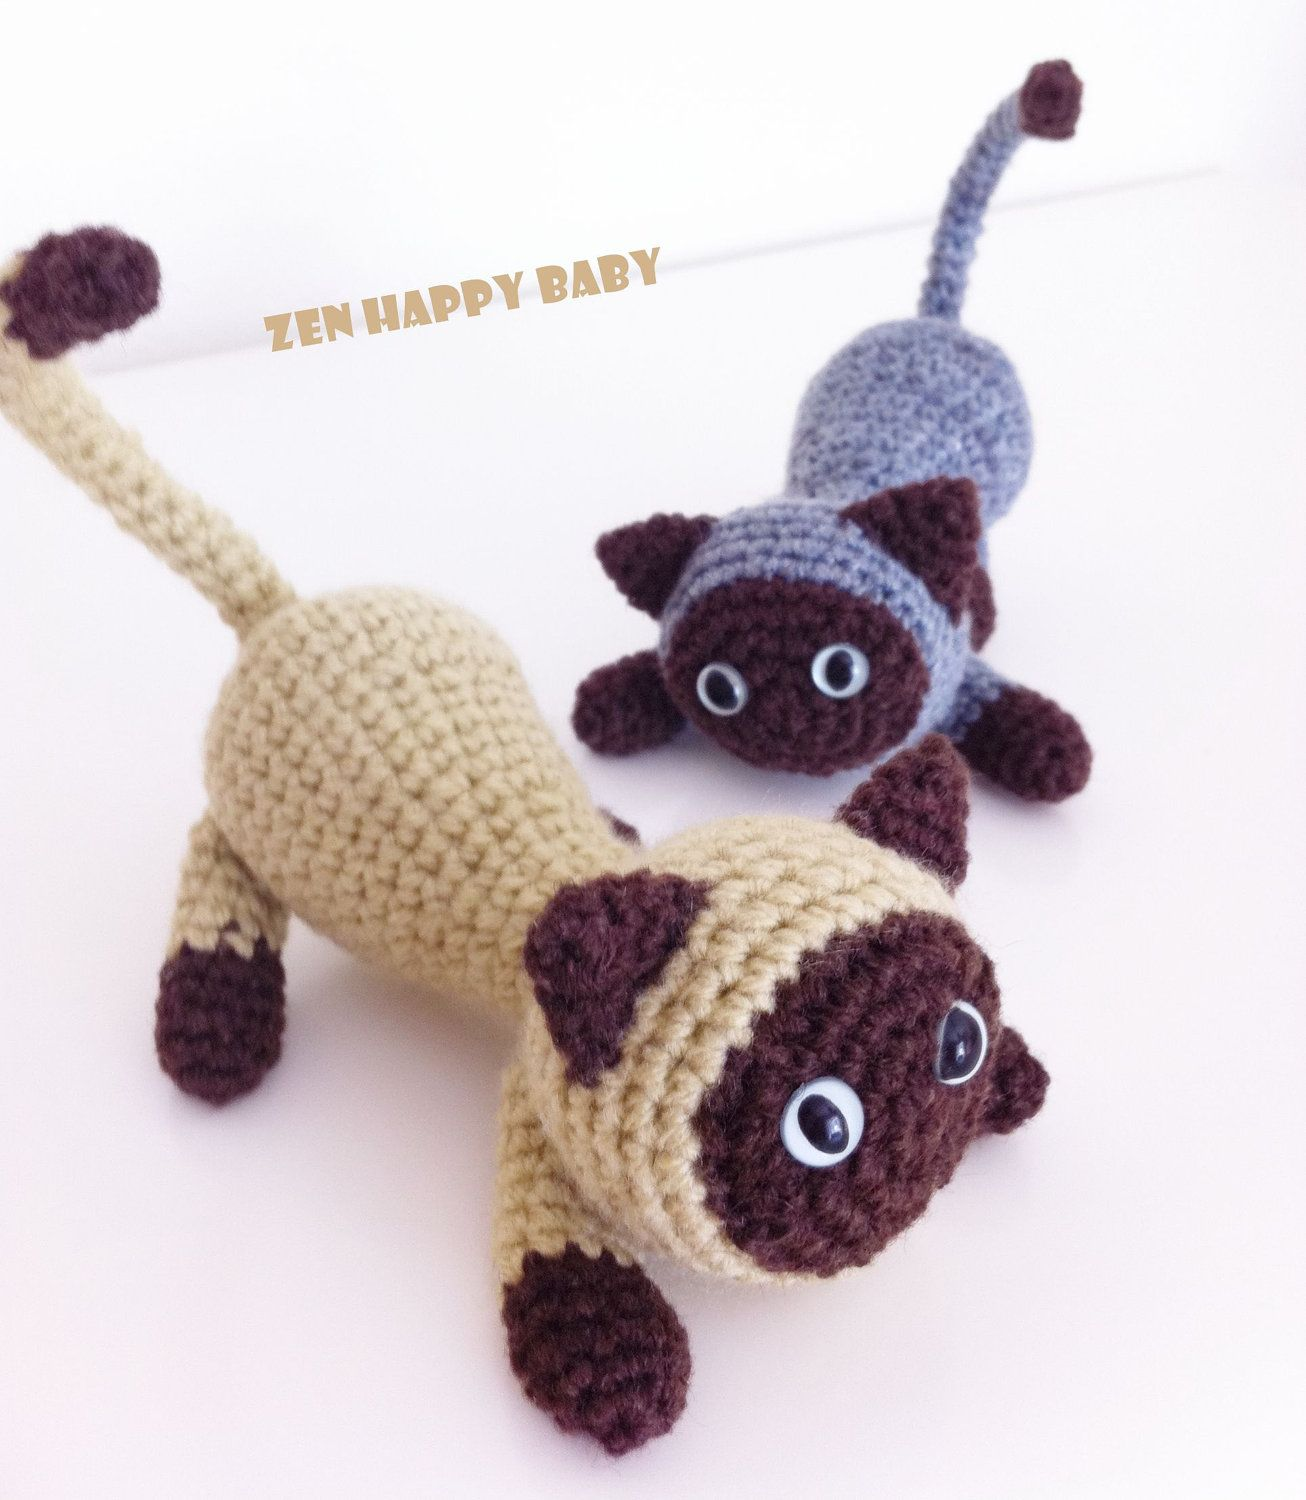 Siamese Cat - Amigurumi Crochet Pattern in 2020 | Stuffed animal ... | 1500x1306